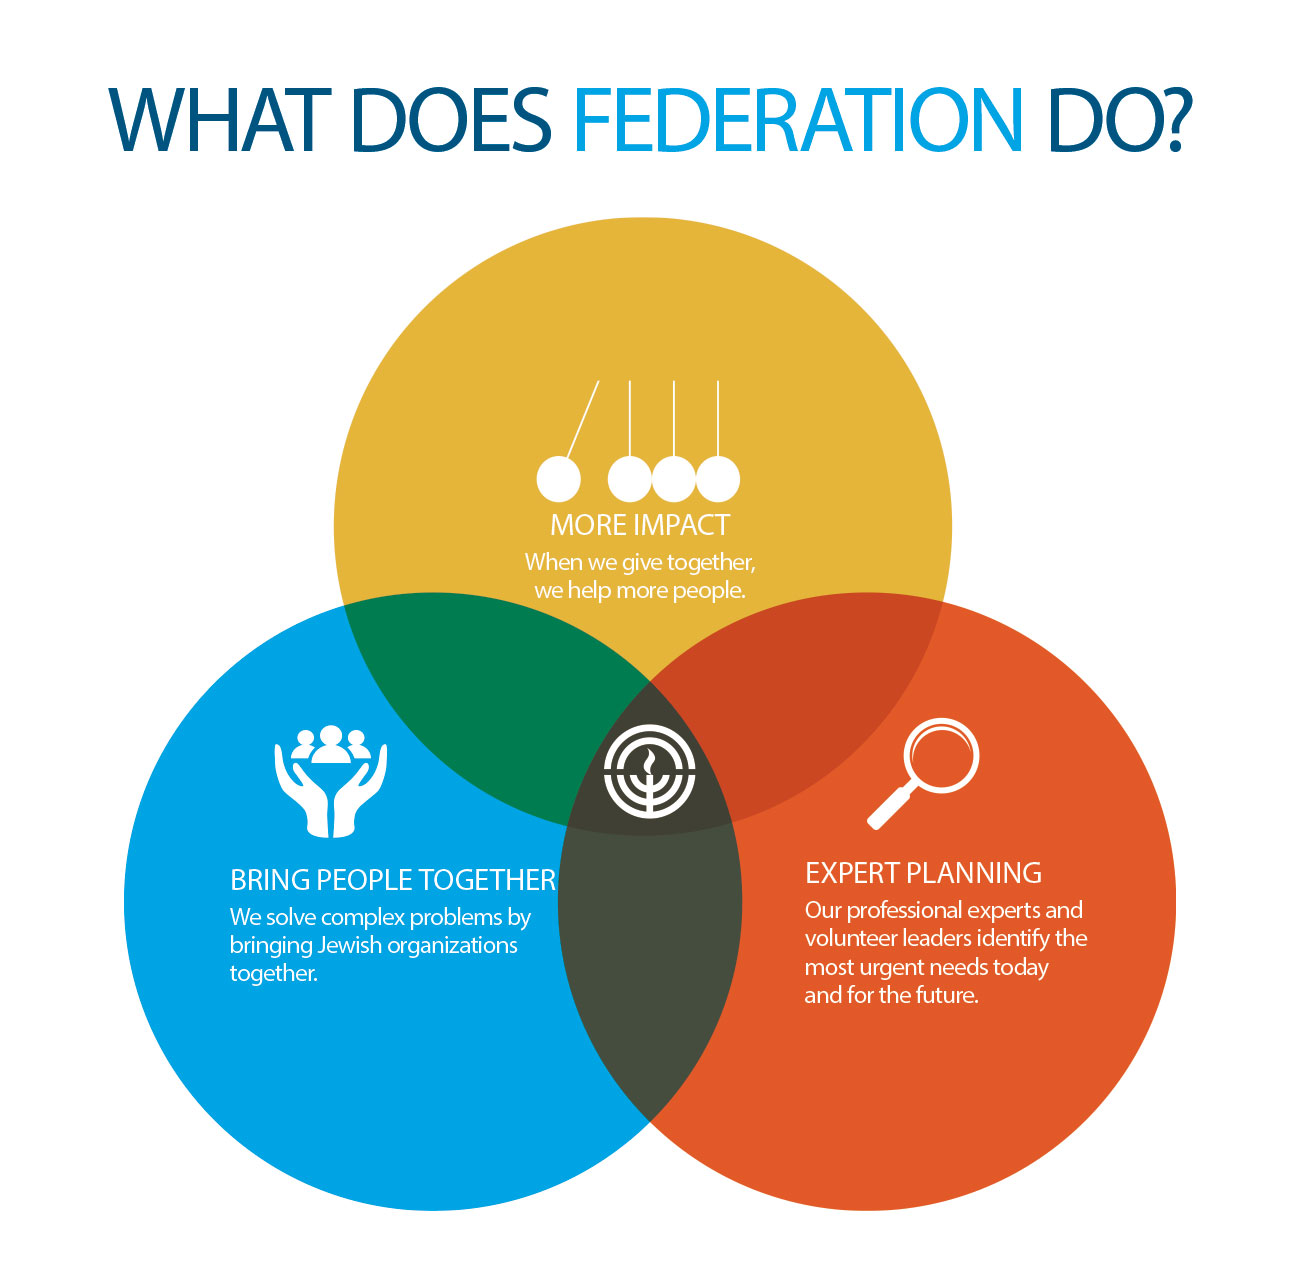 What Does Federation Do?